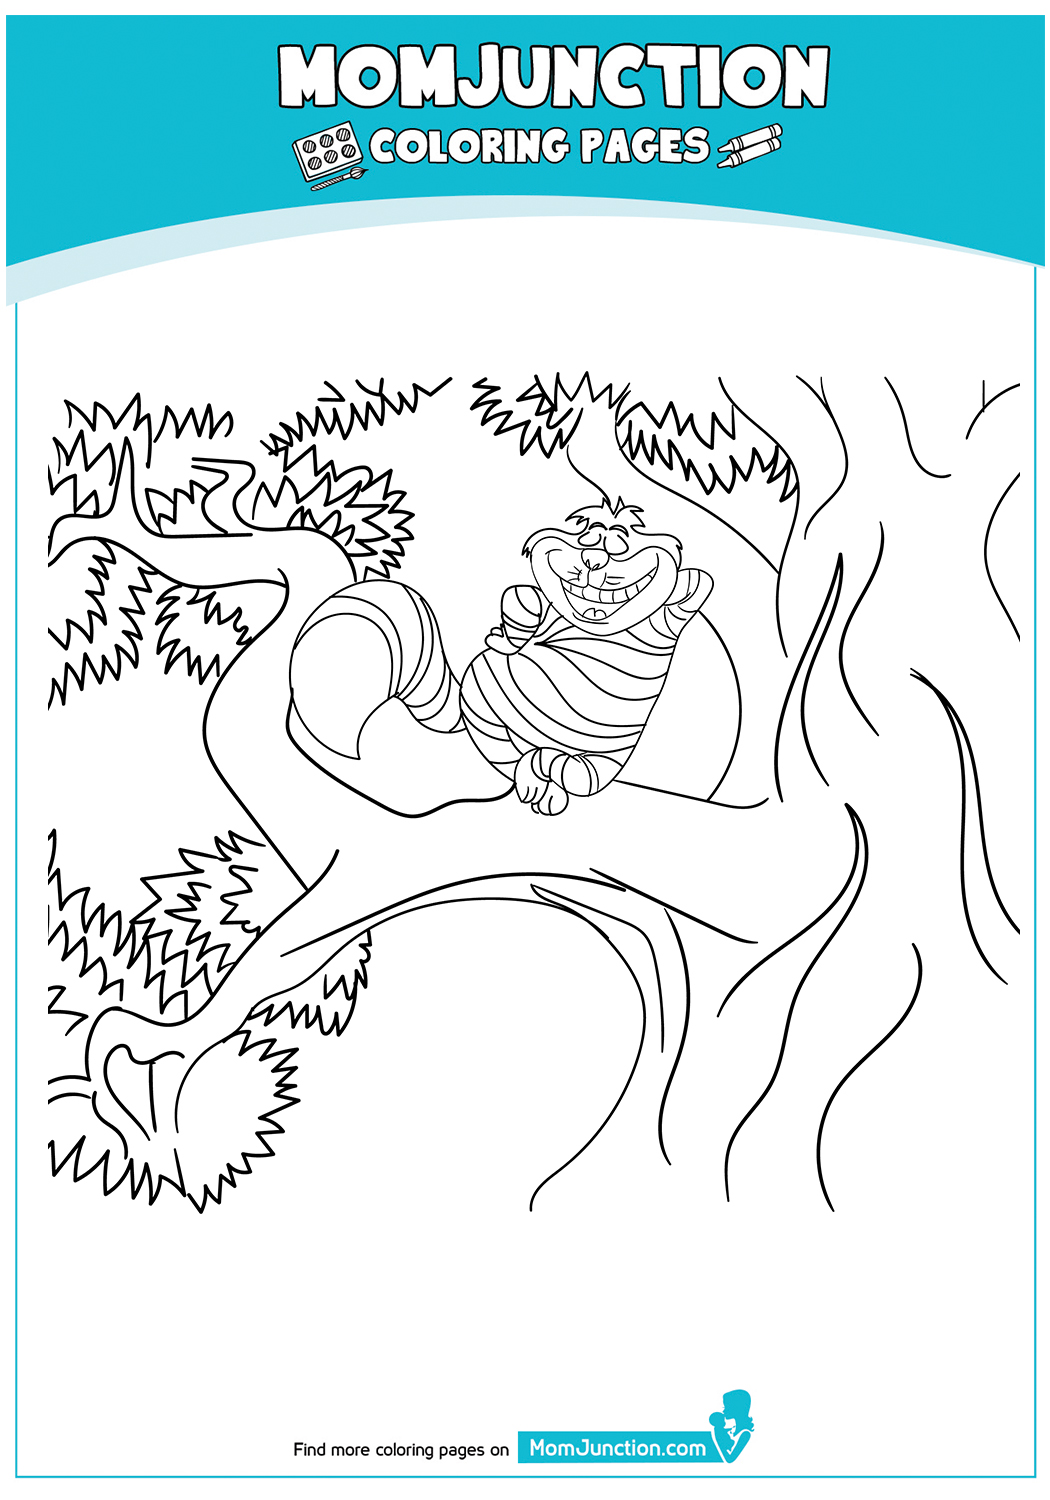 A-Cheshire-Cat-coloring-17